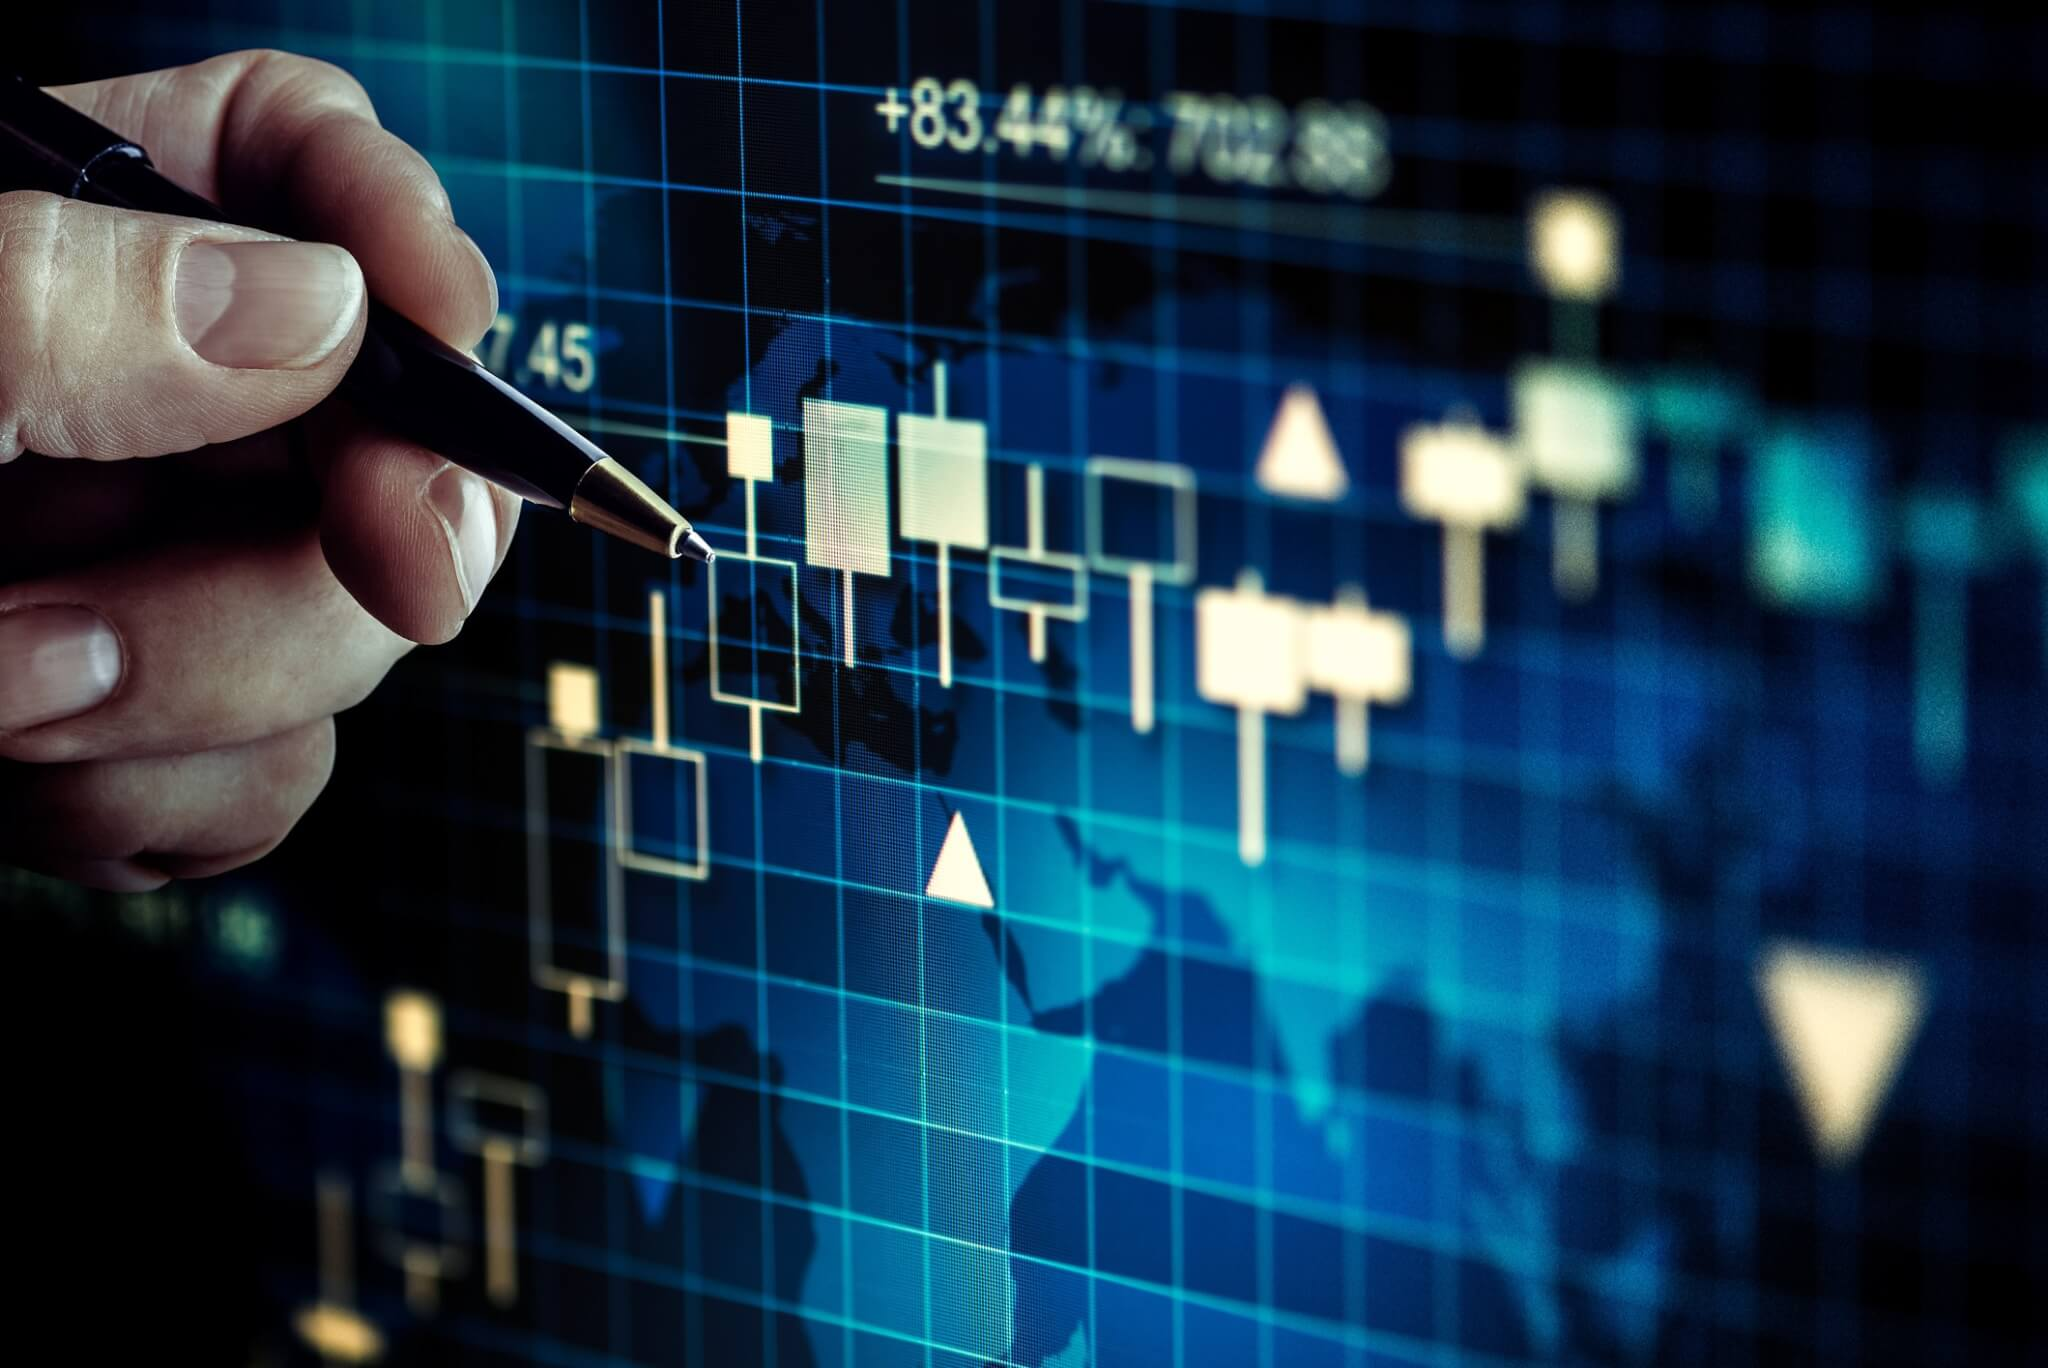 Beginner's Guide to Understanding Trading Charts